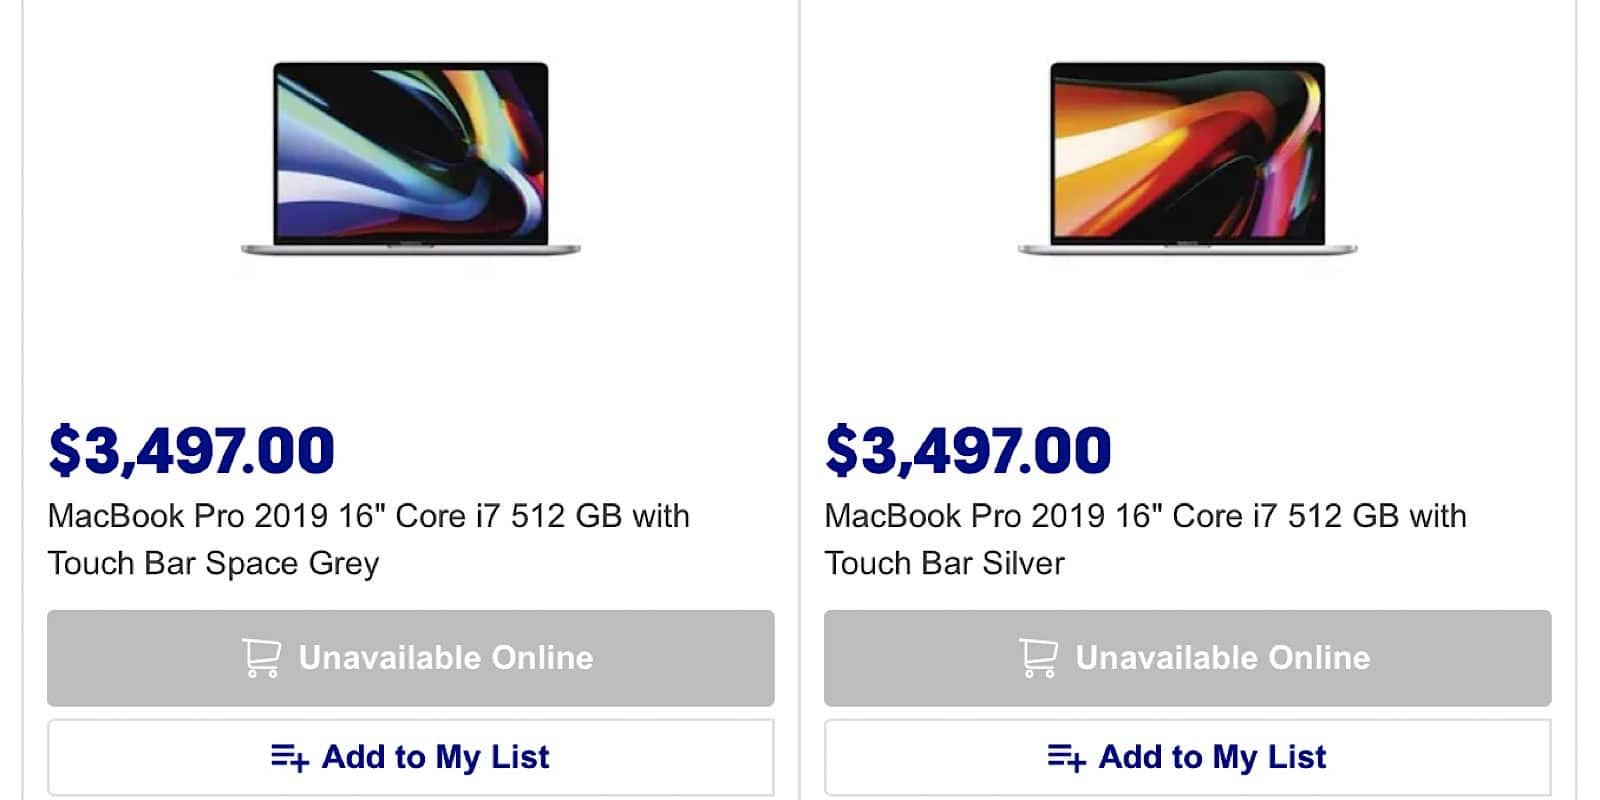 When stocks of MacBook Pros are hard to find, something is happening.